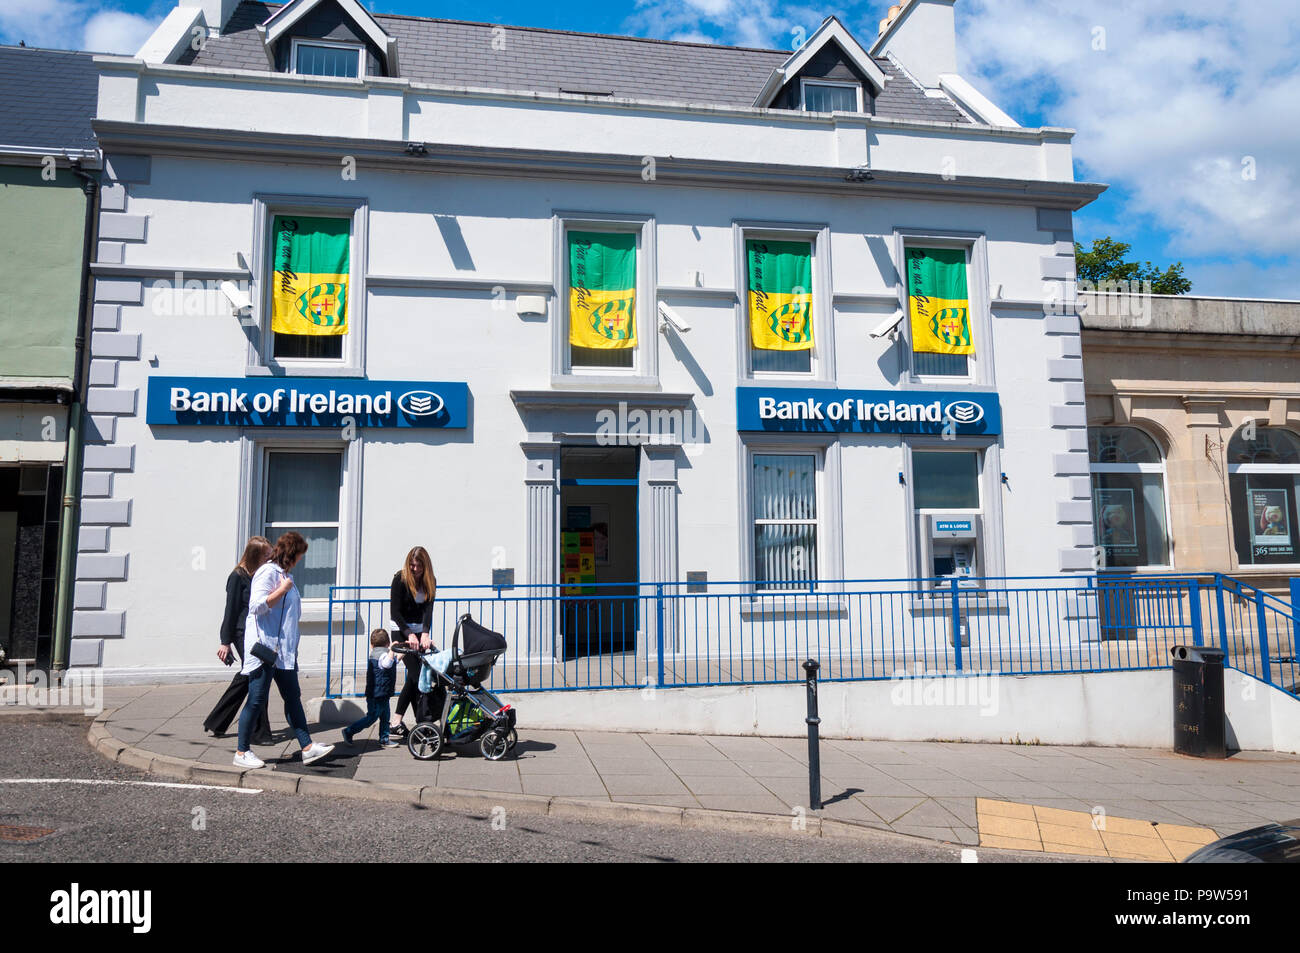 Bank of Ireland branch at Killybegs, County Donegal, Ireland - Stock Image